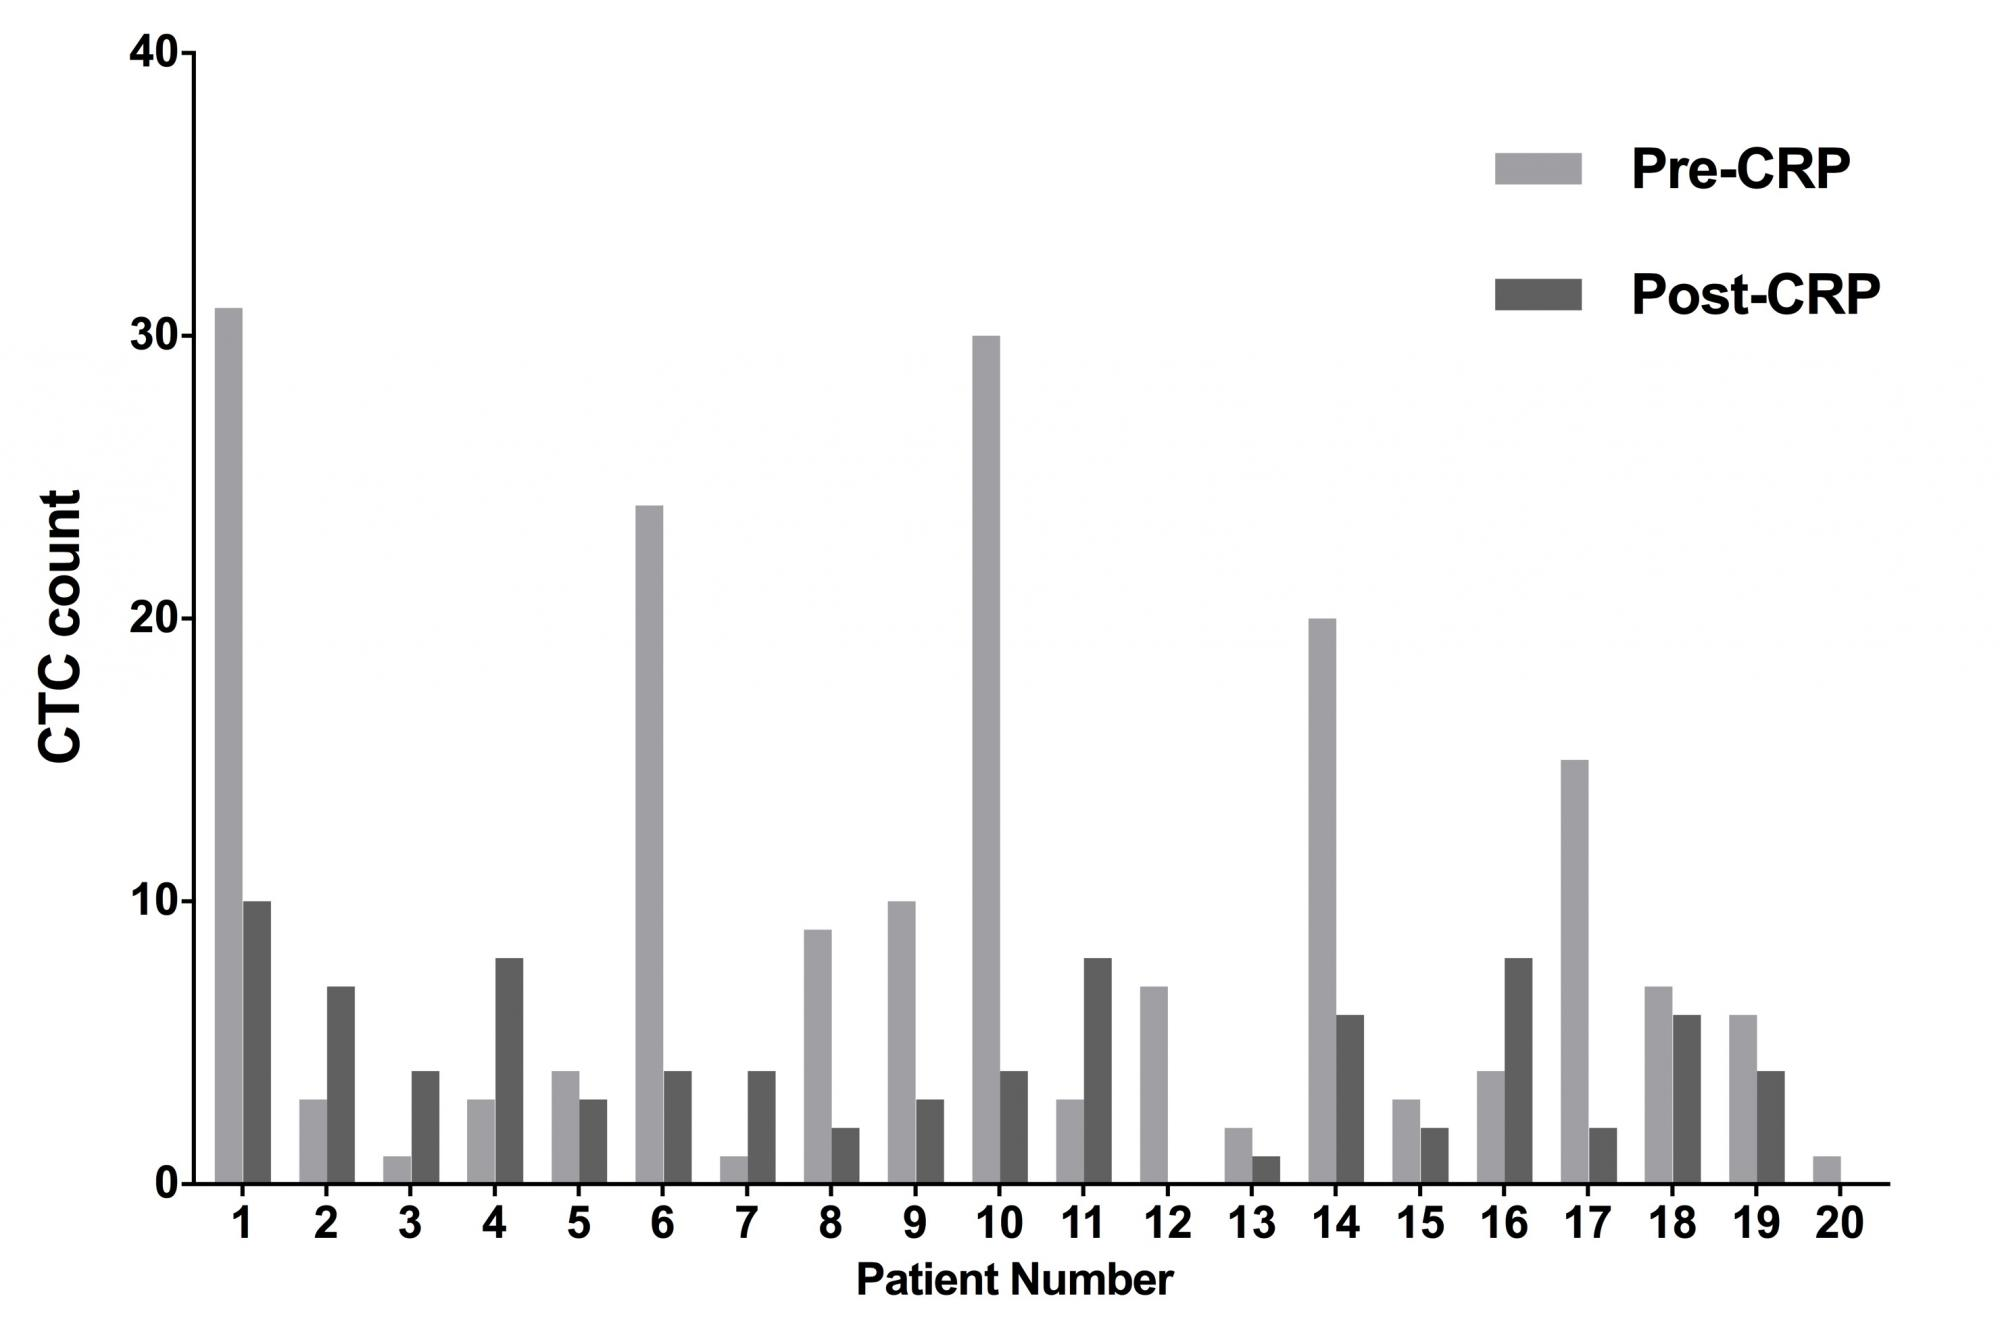 Fig 1. Preoperative and postoperative counts in each of 20 patients treated with cytoreductive radical prostatectomy